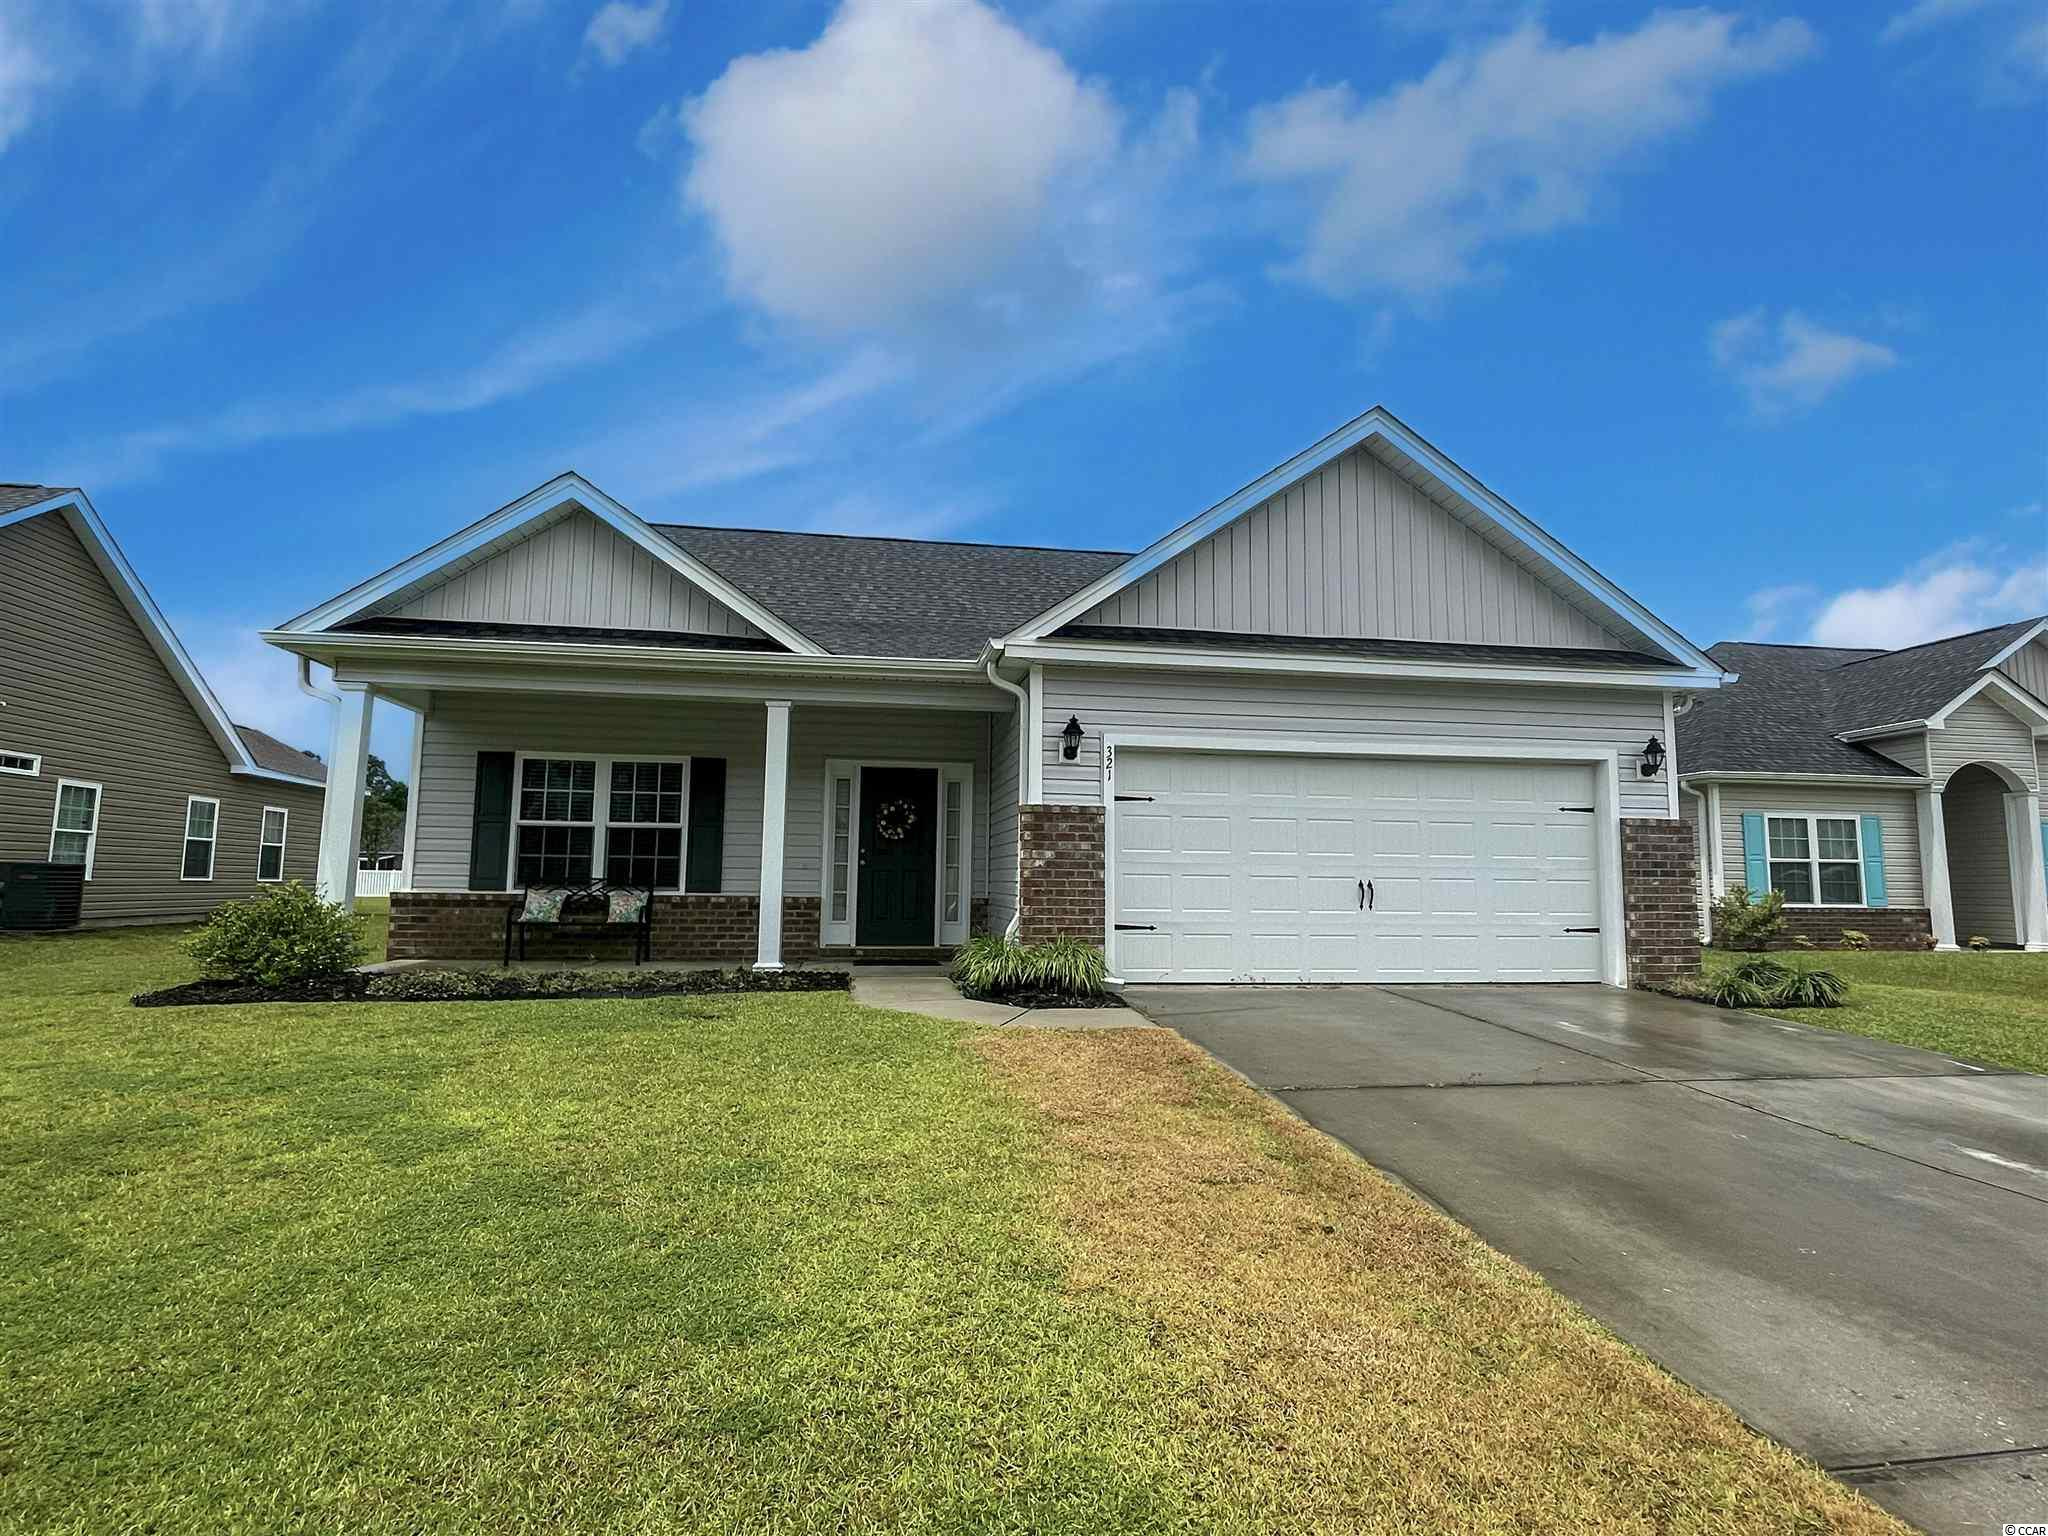 Welcome to Barons Bluff North, a natural gas community! And lets talk about location! Just minutes from International, Hwy 22 and Hwy 31. Built in 2016, this home comes standard with natural gas and a tankless water heater. This home offers a spacious open floor plan. The kitchen is open with a breakfast bar.  The covered patio is ideal for relaxing, sipping on a beverage of choice. The back yard is fenced perfect for pets. Its just a short stroll to the pool. Schedule a showing time today!